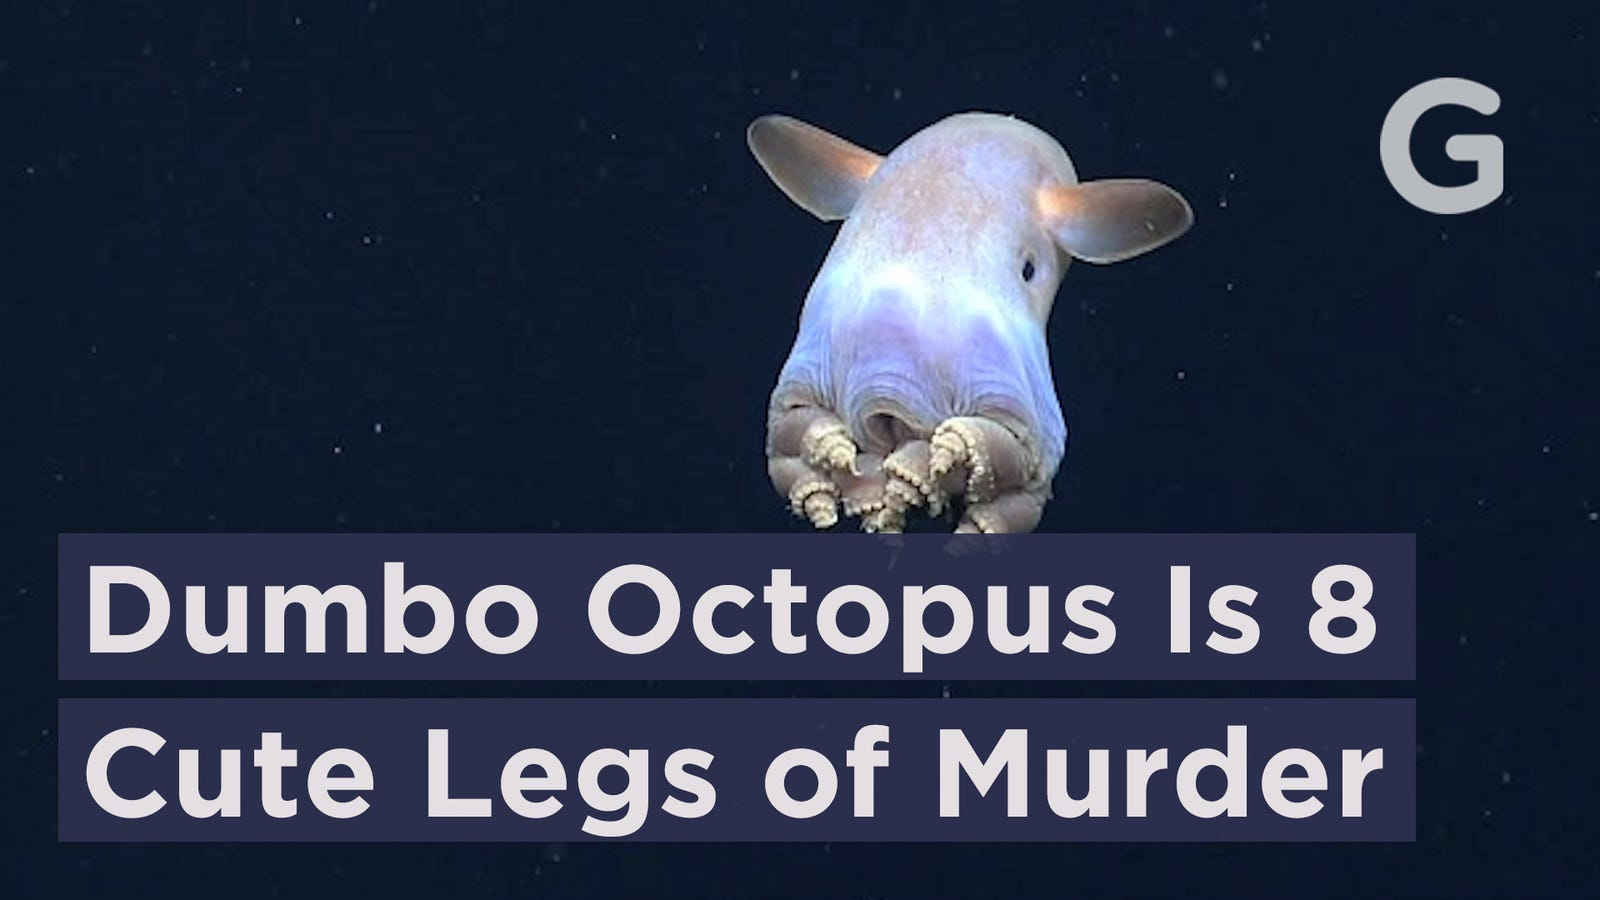 The Dumbo Octopus Is Eight Cute Legs of Stone Cold Murder